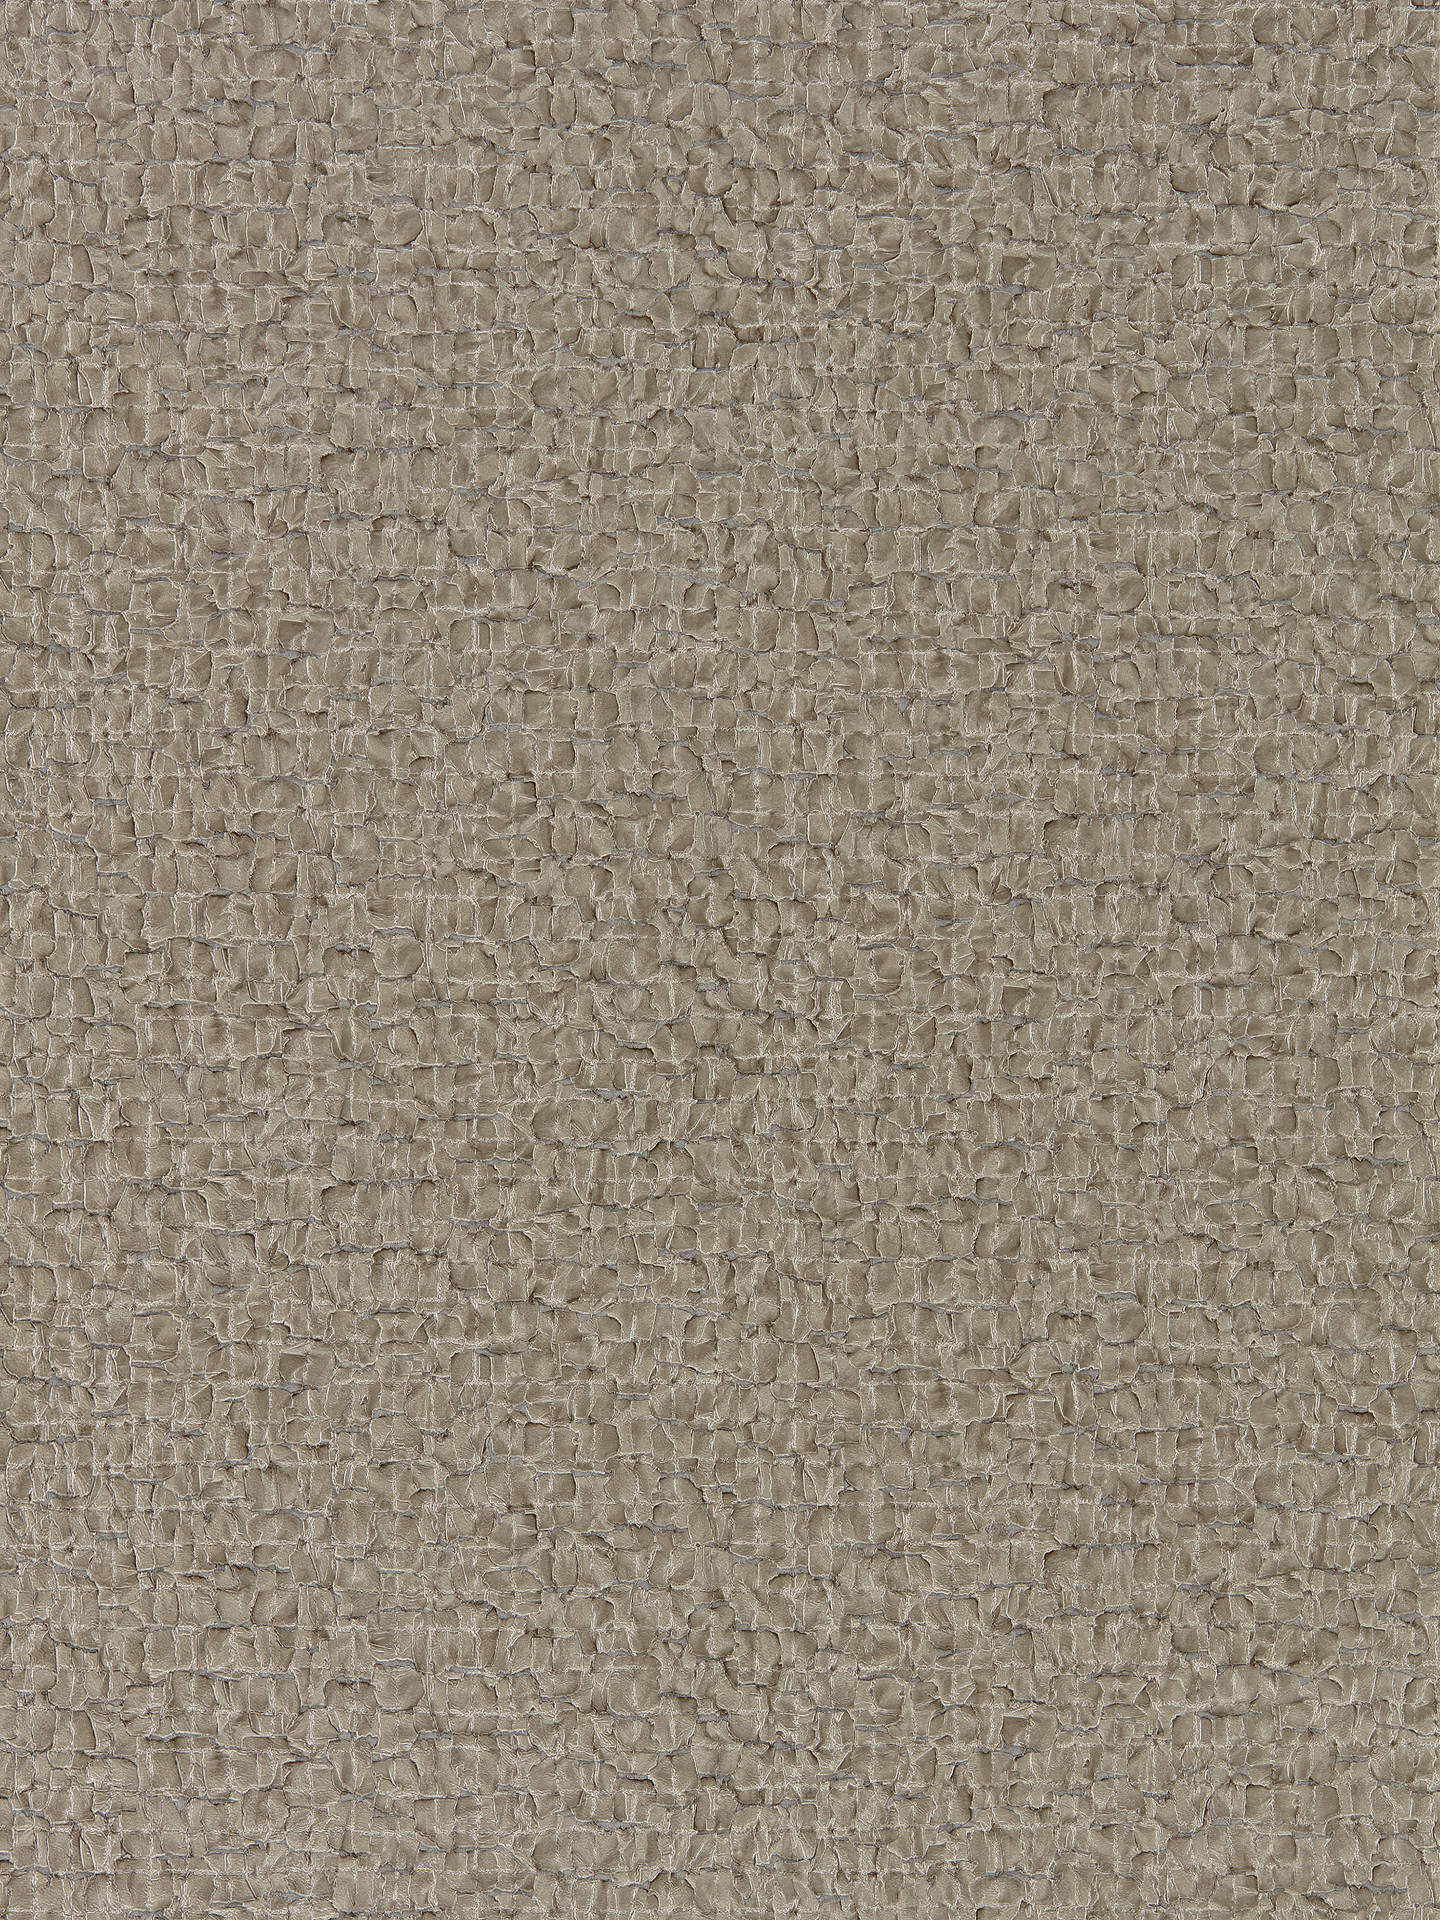 Buy Zoffany Phaedra Leighton Wallpaper, Grey Pearl ZPHA312600 Online at johnlewis.com